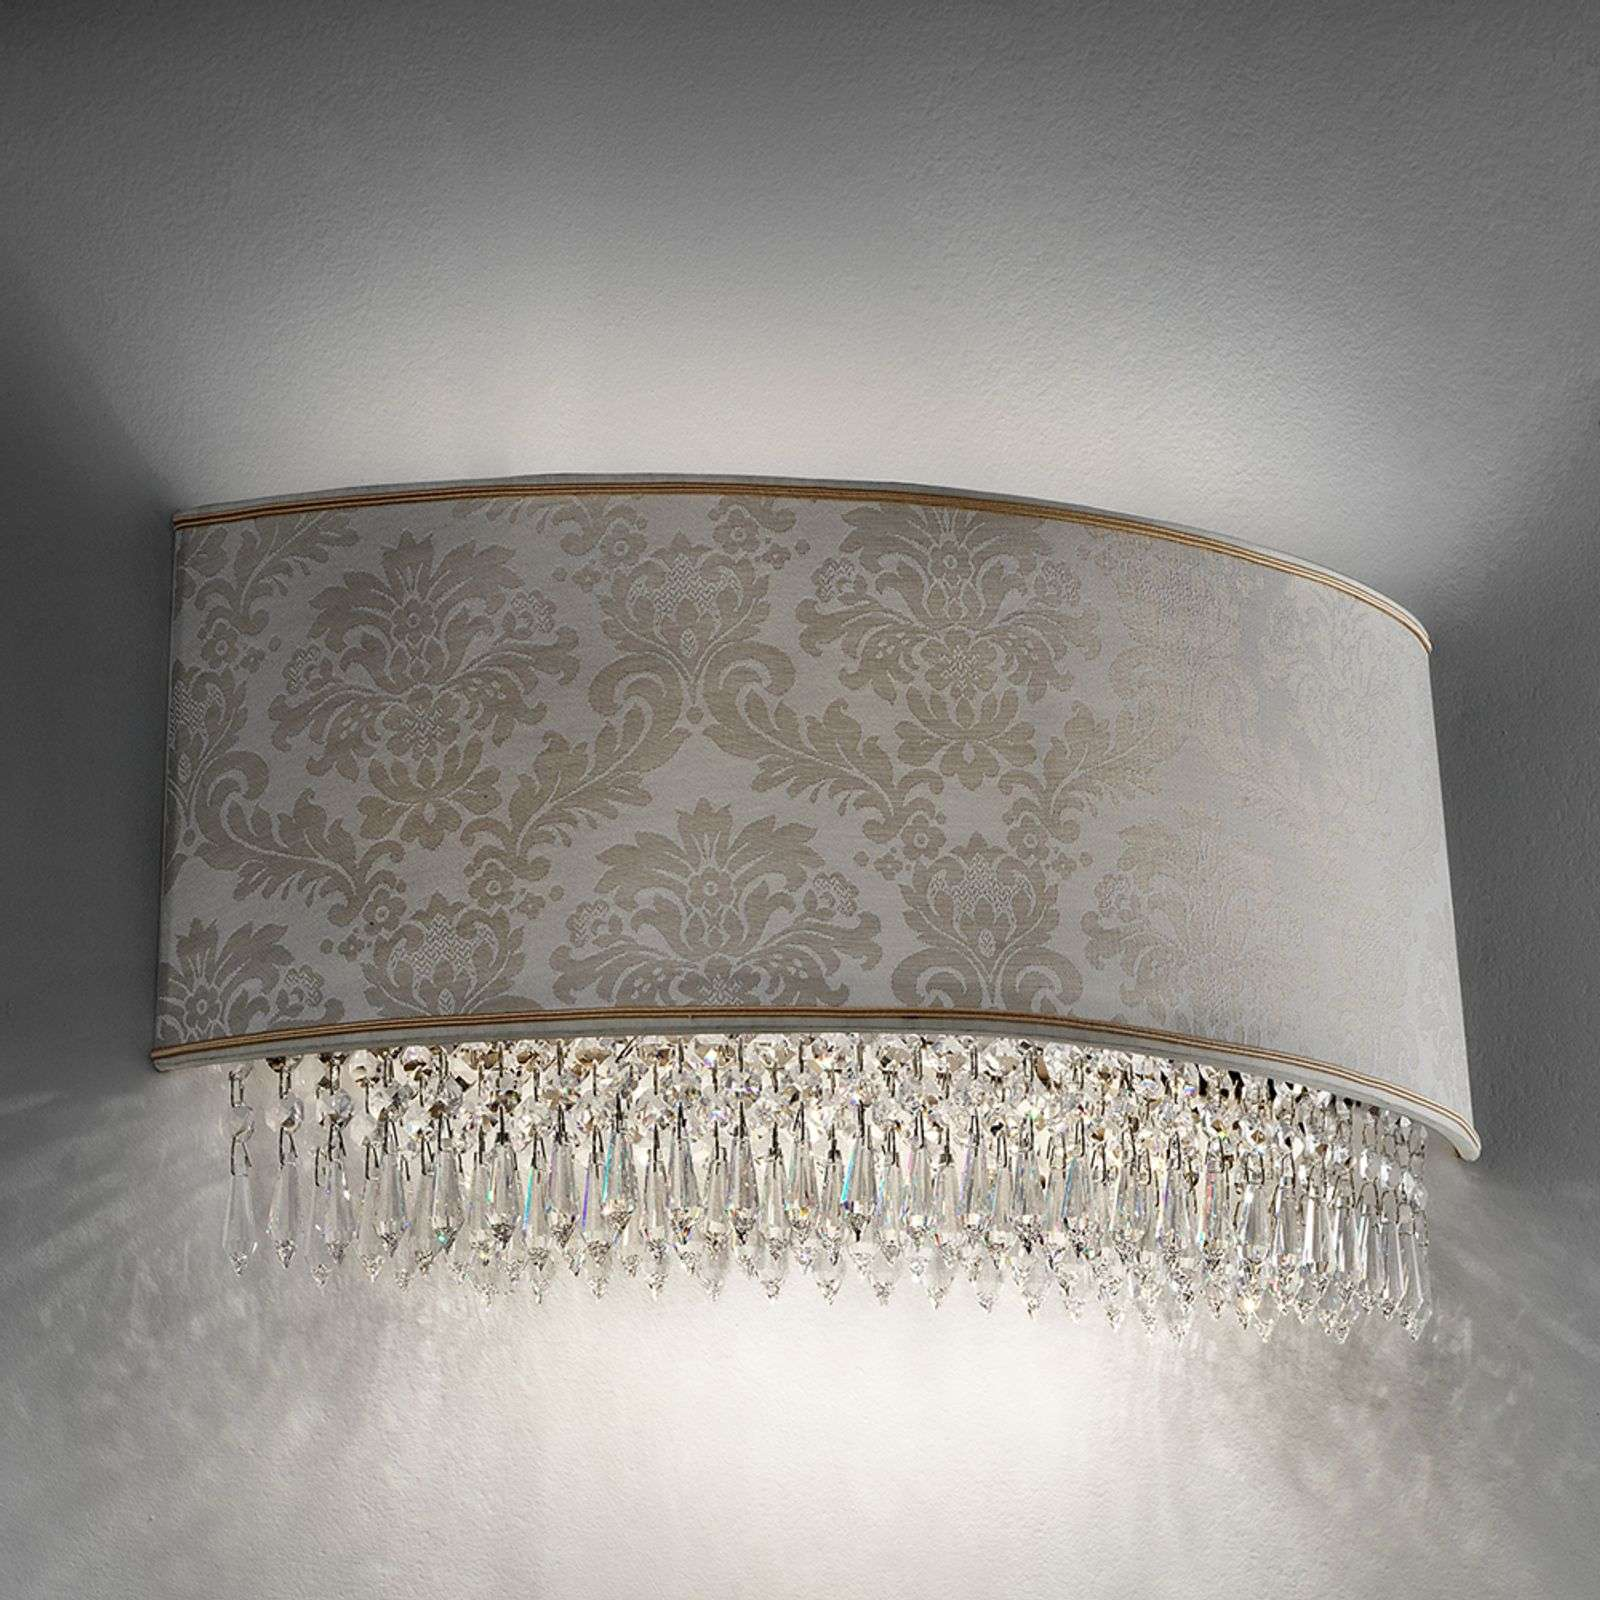 50 cm wide wall lamp Glass with damask lampshade